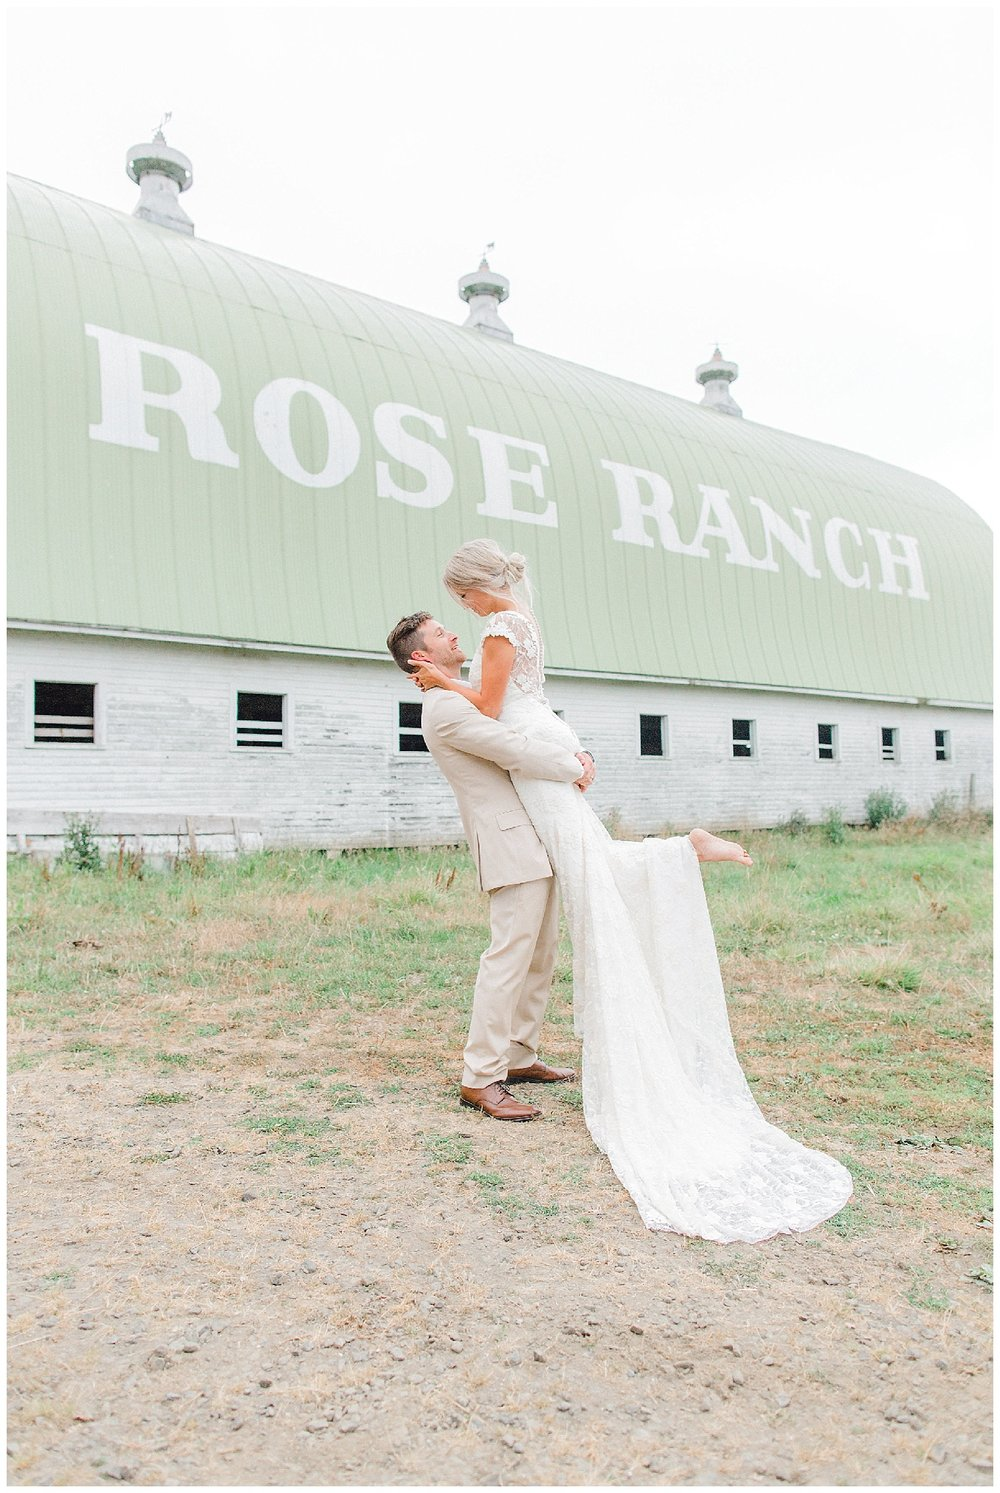 Emma Rose Company Dream Chasers Workshop and Education for Photographer | Light and Airy Rose Ranch Dream Barn Venue Wedding_0032.jpg